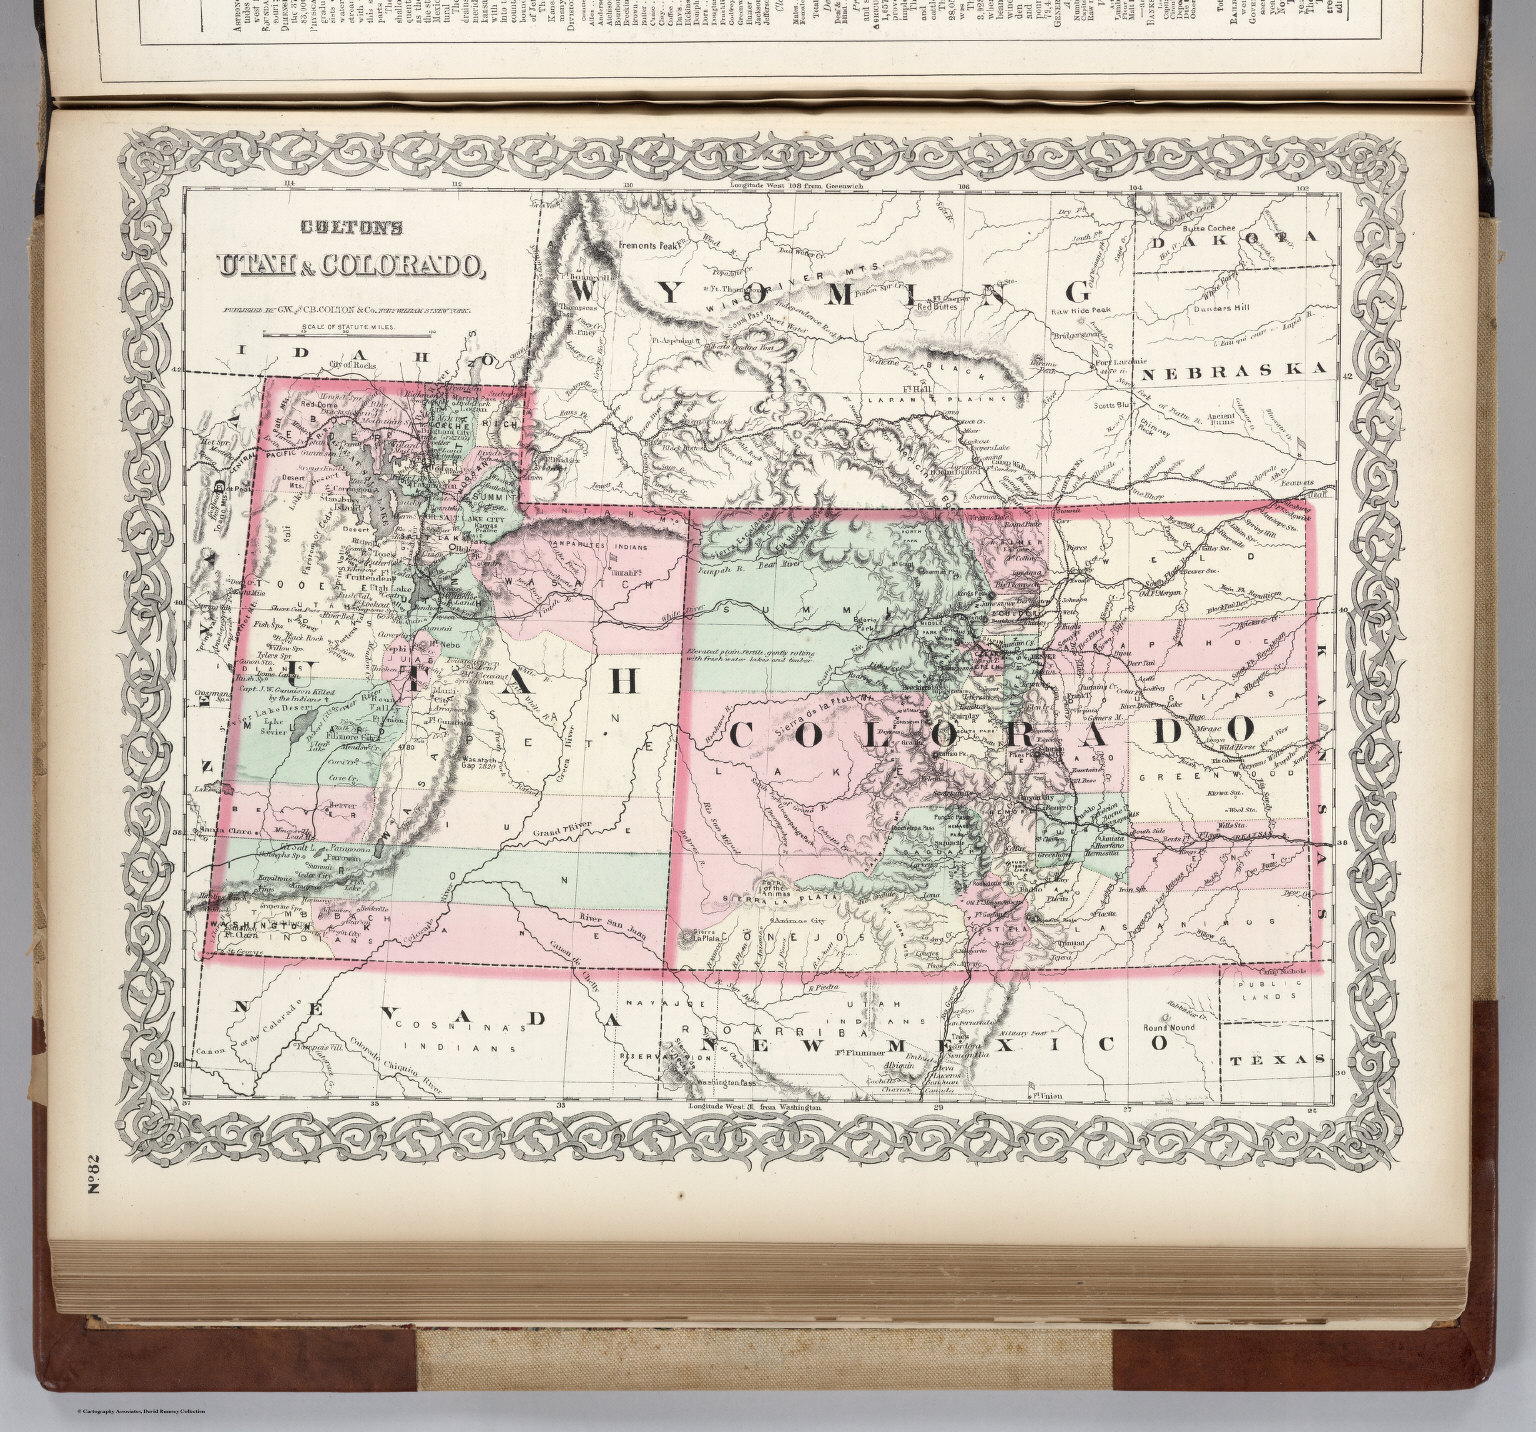 Utah. Colorado. - David Rumsey Historical Map Collection